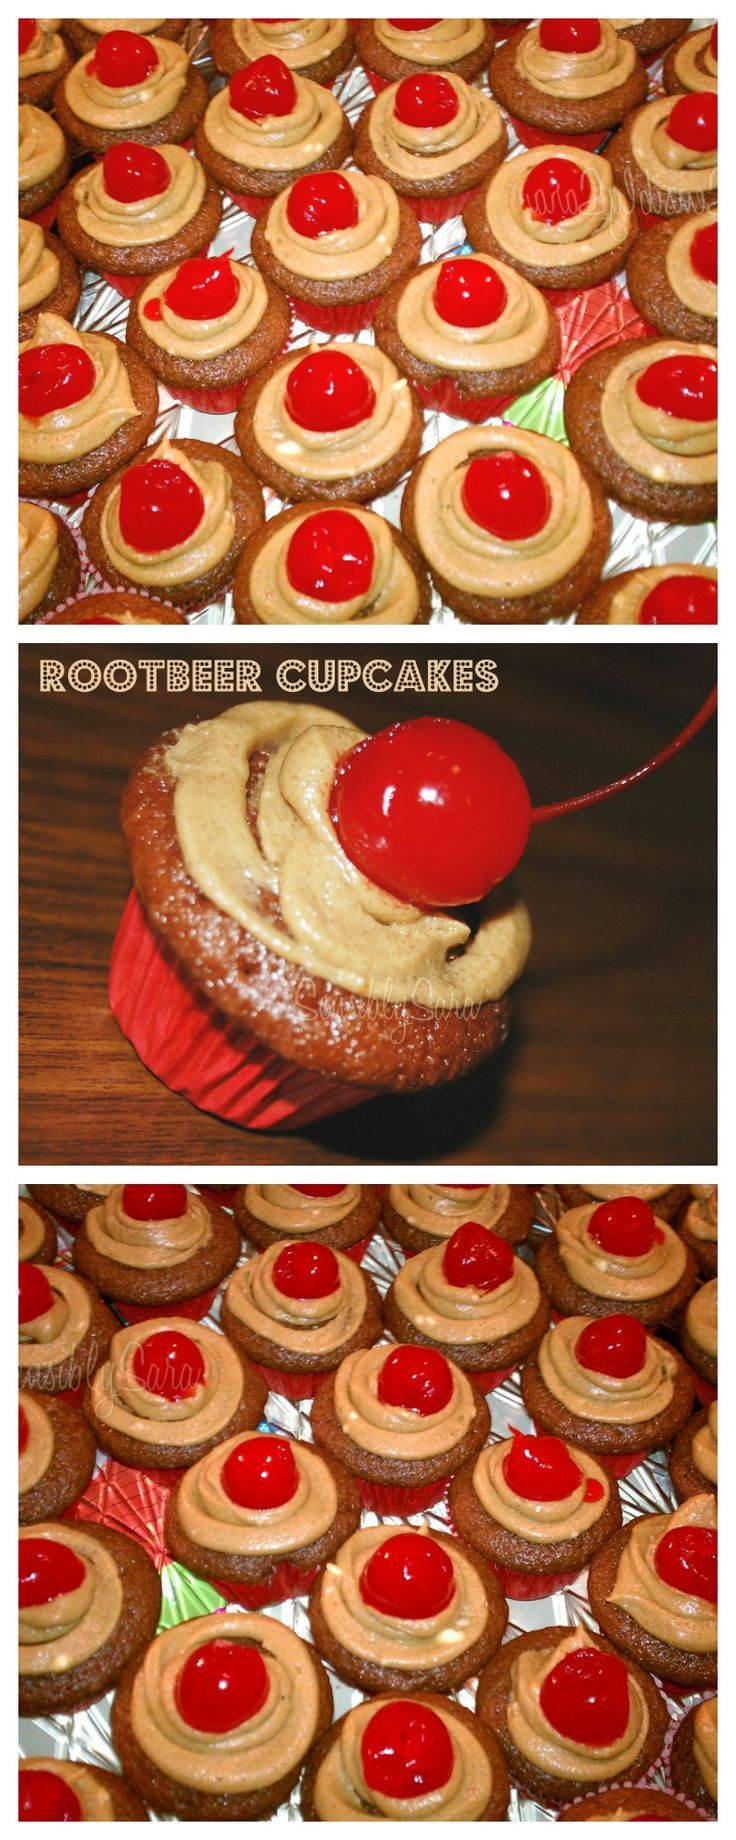 Root beer cupcake recipe. Enjoy the flavor of your favorite beverage as a dessert recipe instead!